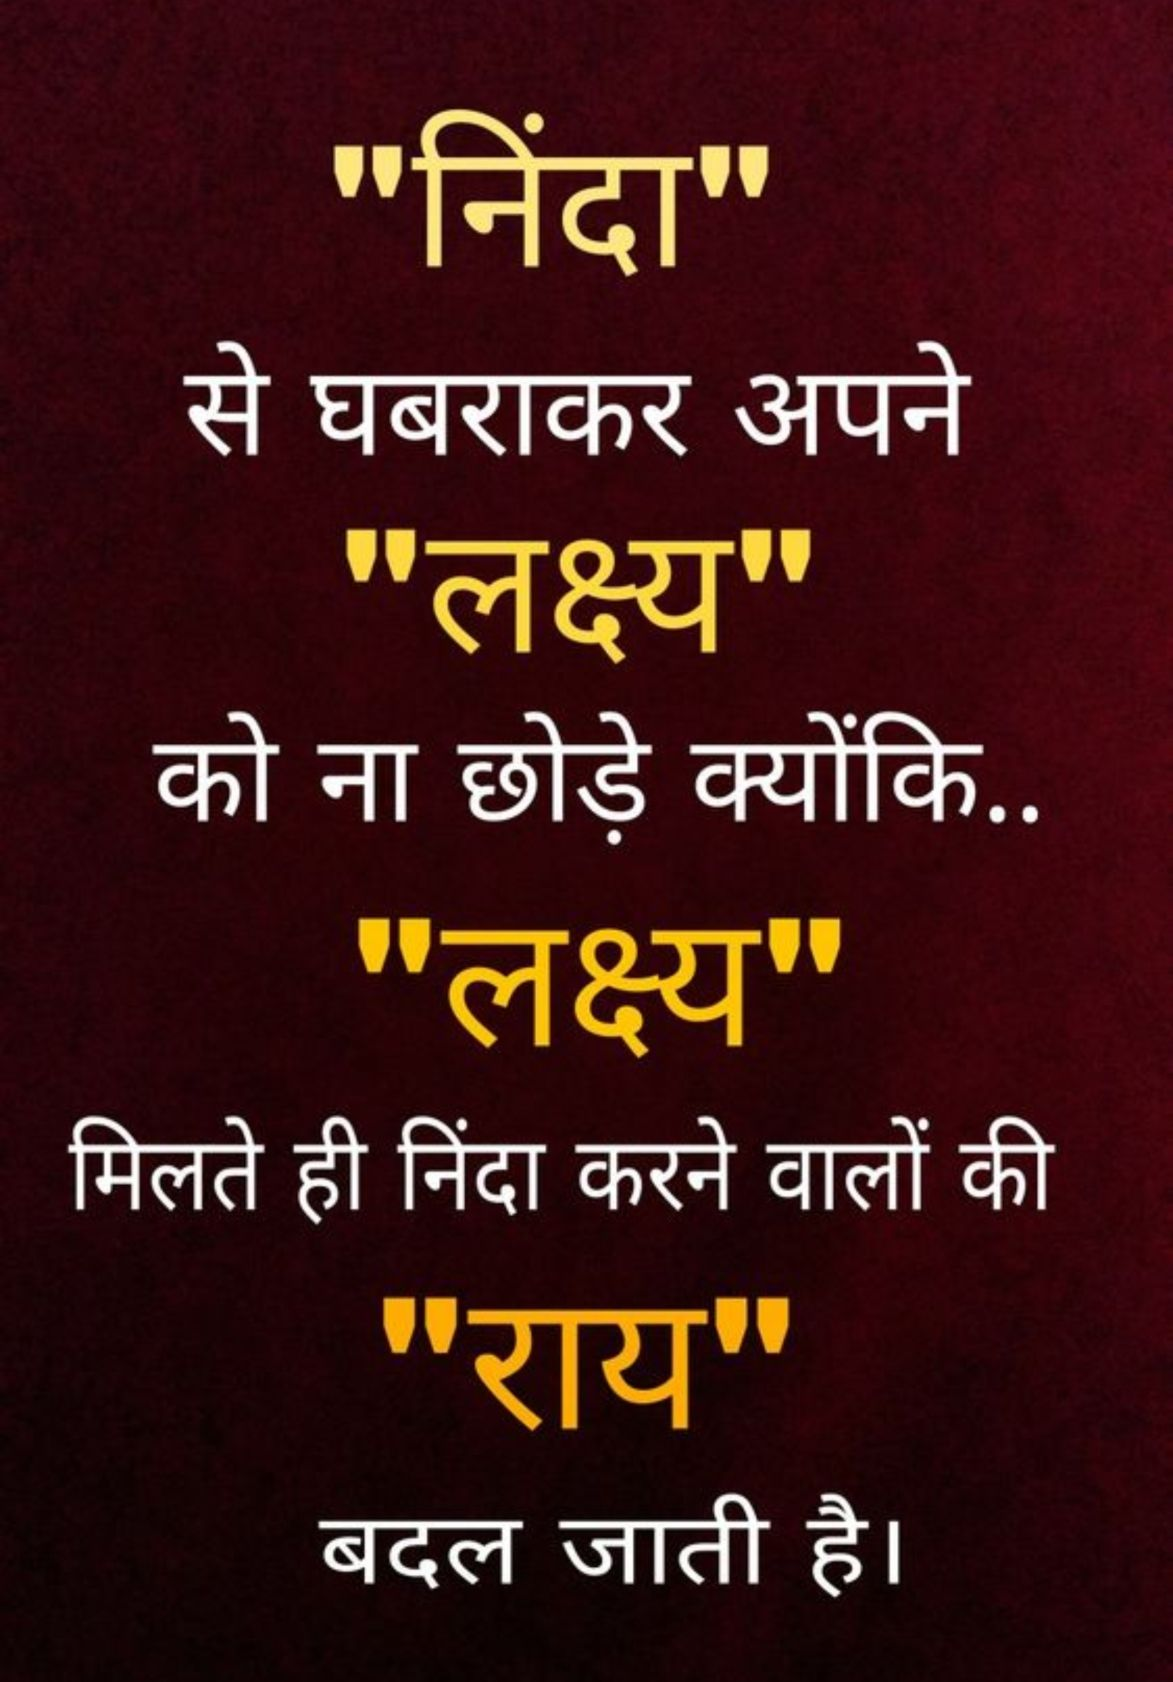 51 Best Motivational Quotes In Hindi Motivational Quotes In Hindi Business Motivational Quotes Best Motivational Quotes